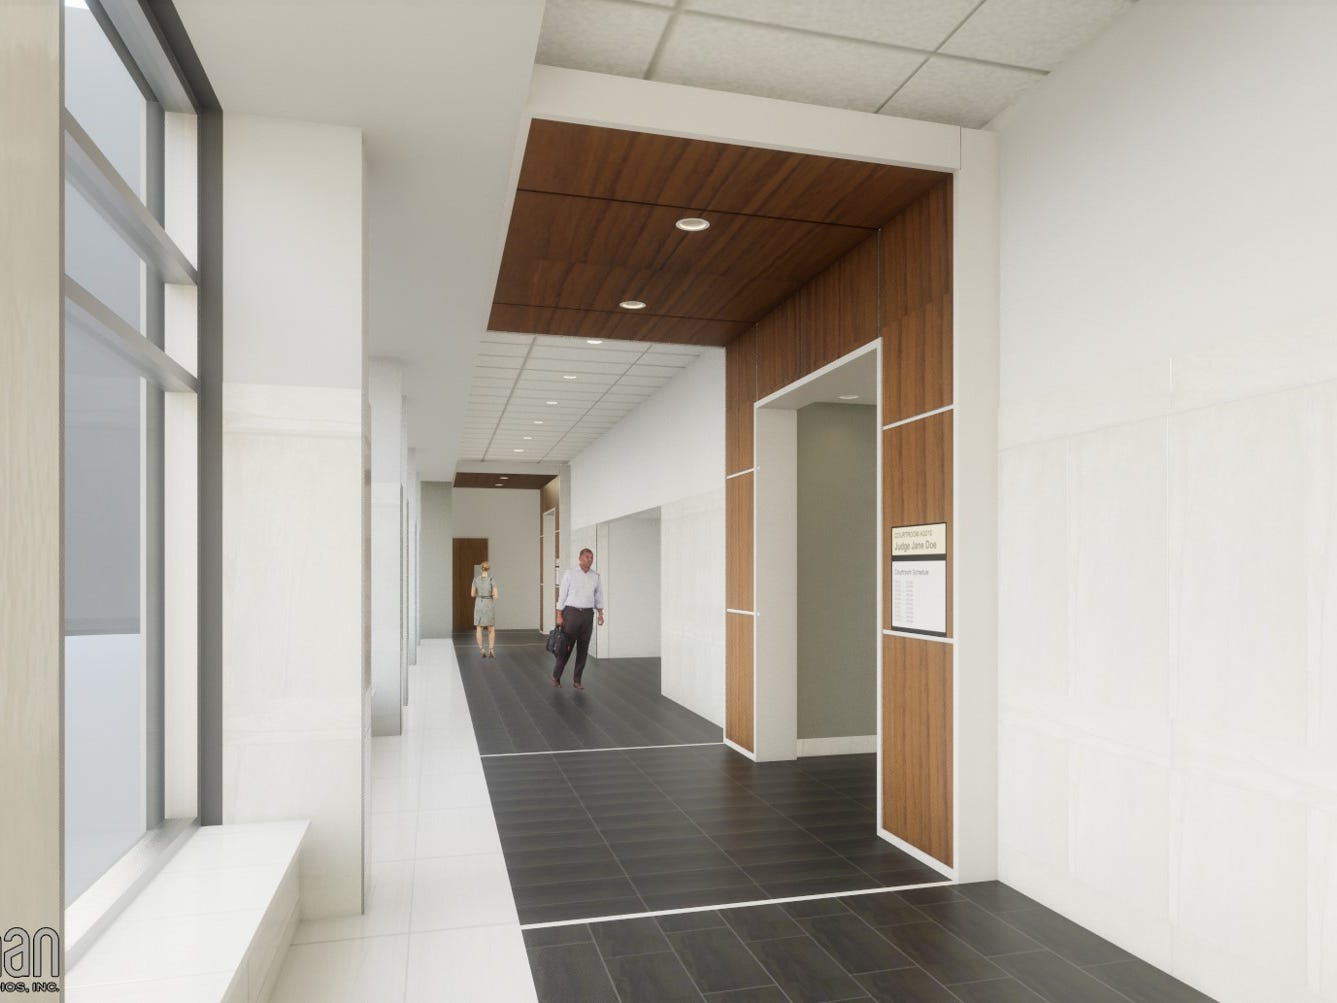 This rendering shows what the public corridor (south view) of the four-story, eight-courtroom addition at the Waukesha County Courthouse will look like once it is completed in 2021. Demolition on the existing court intake and old jail facilities at the construction site began March 11.